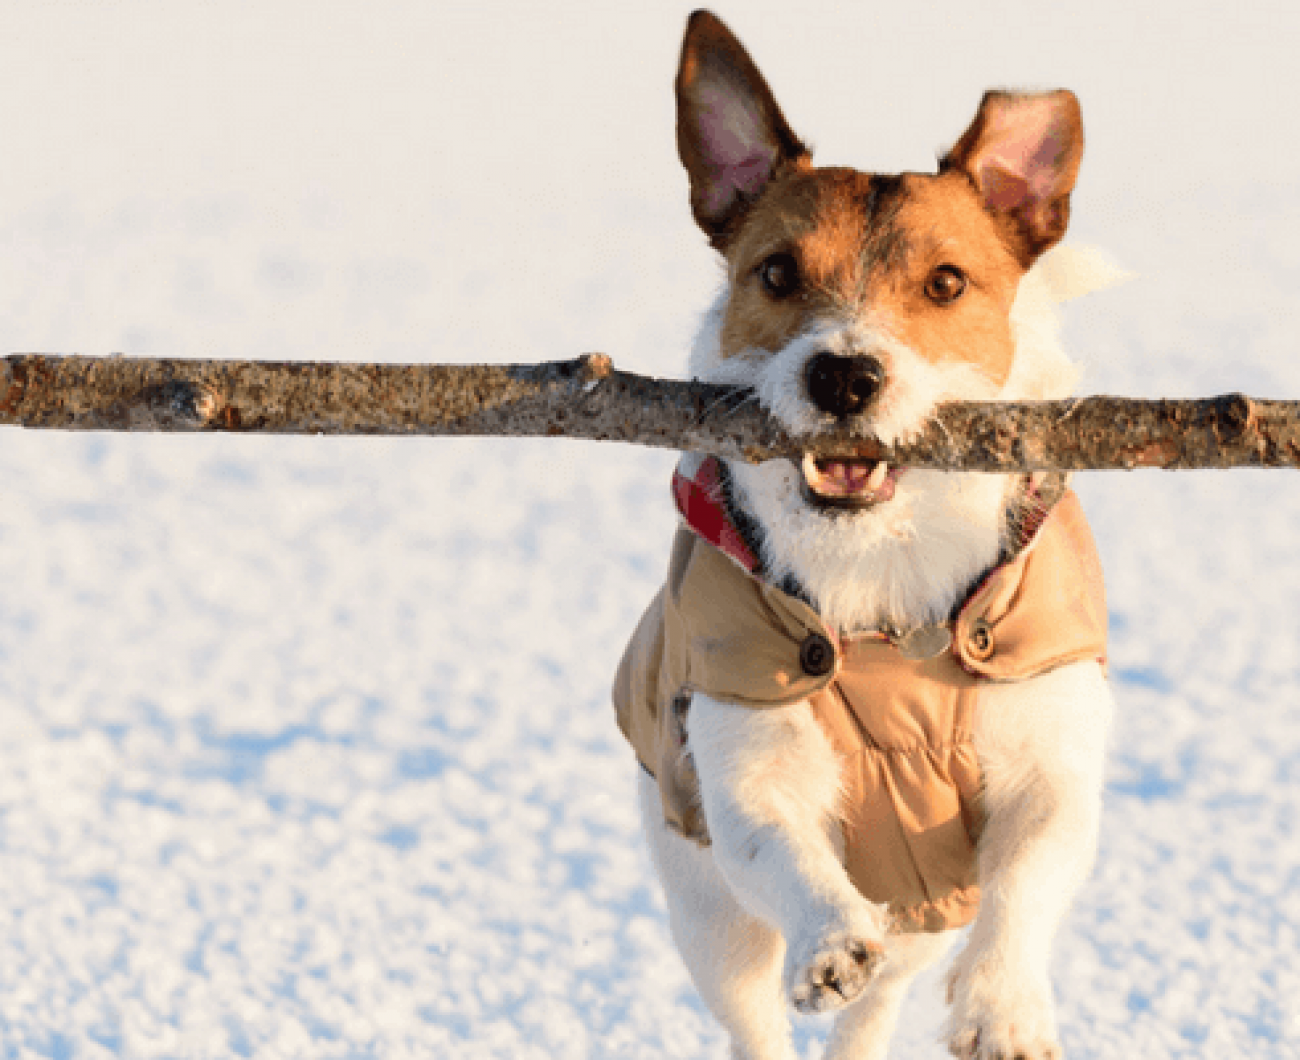 The danger of throwing sticks for your dog